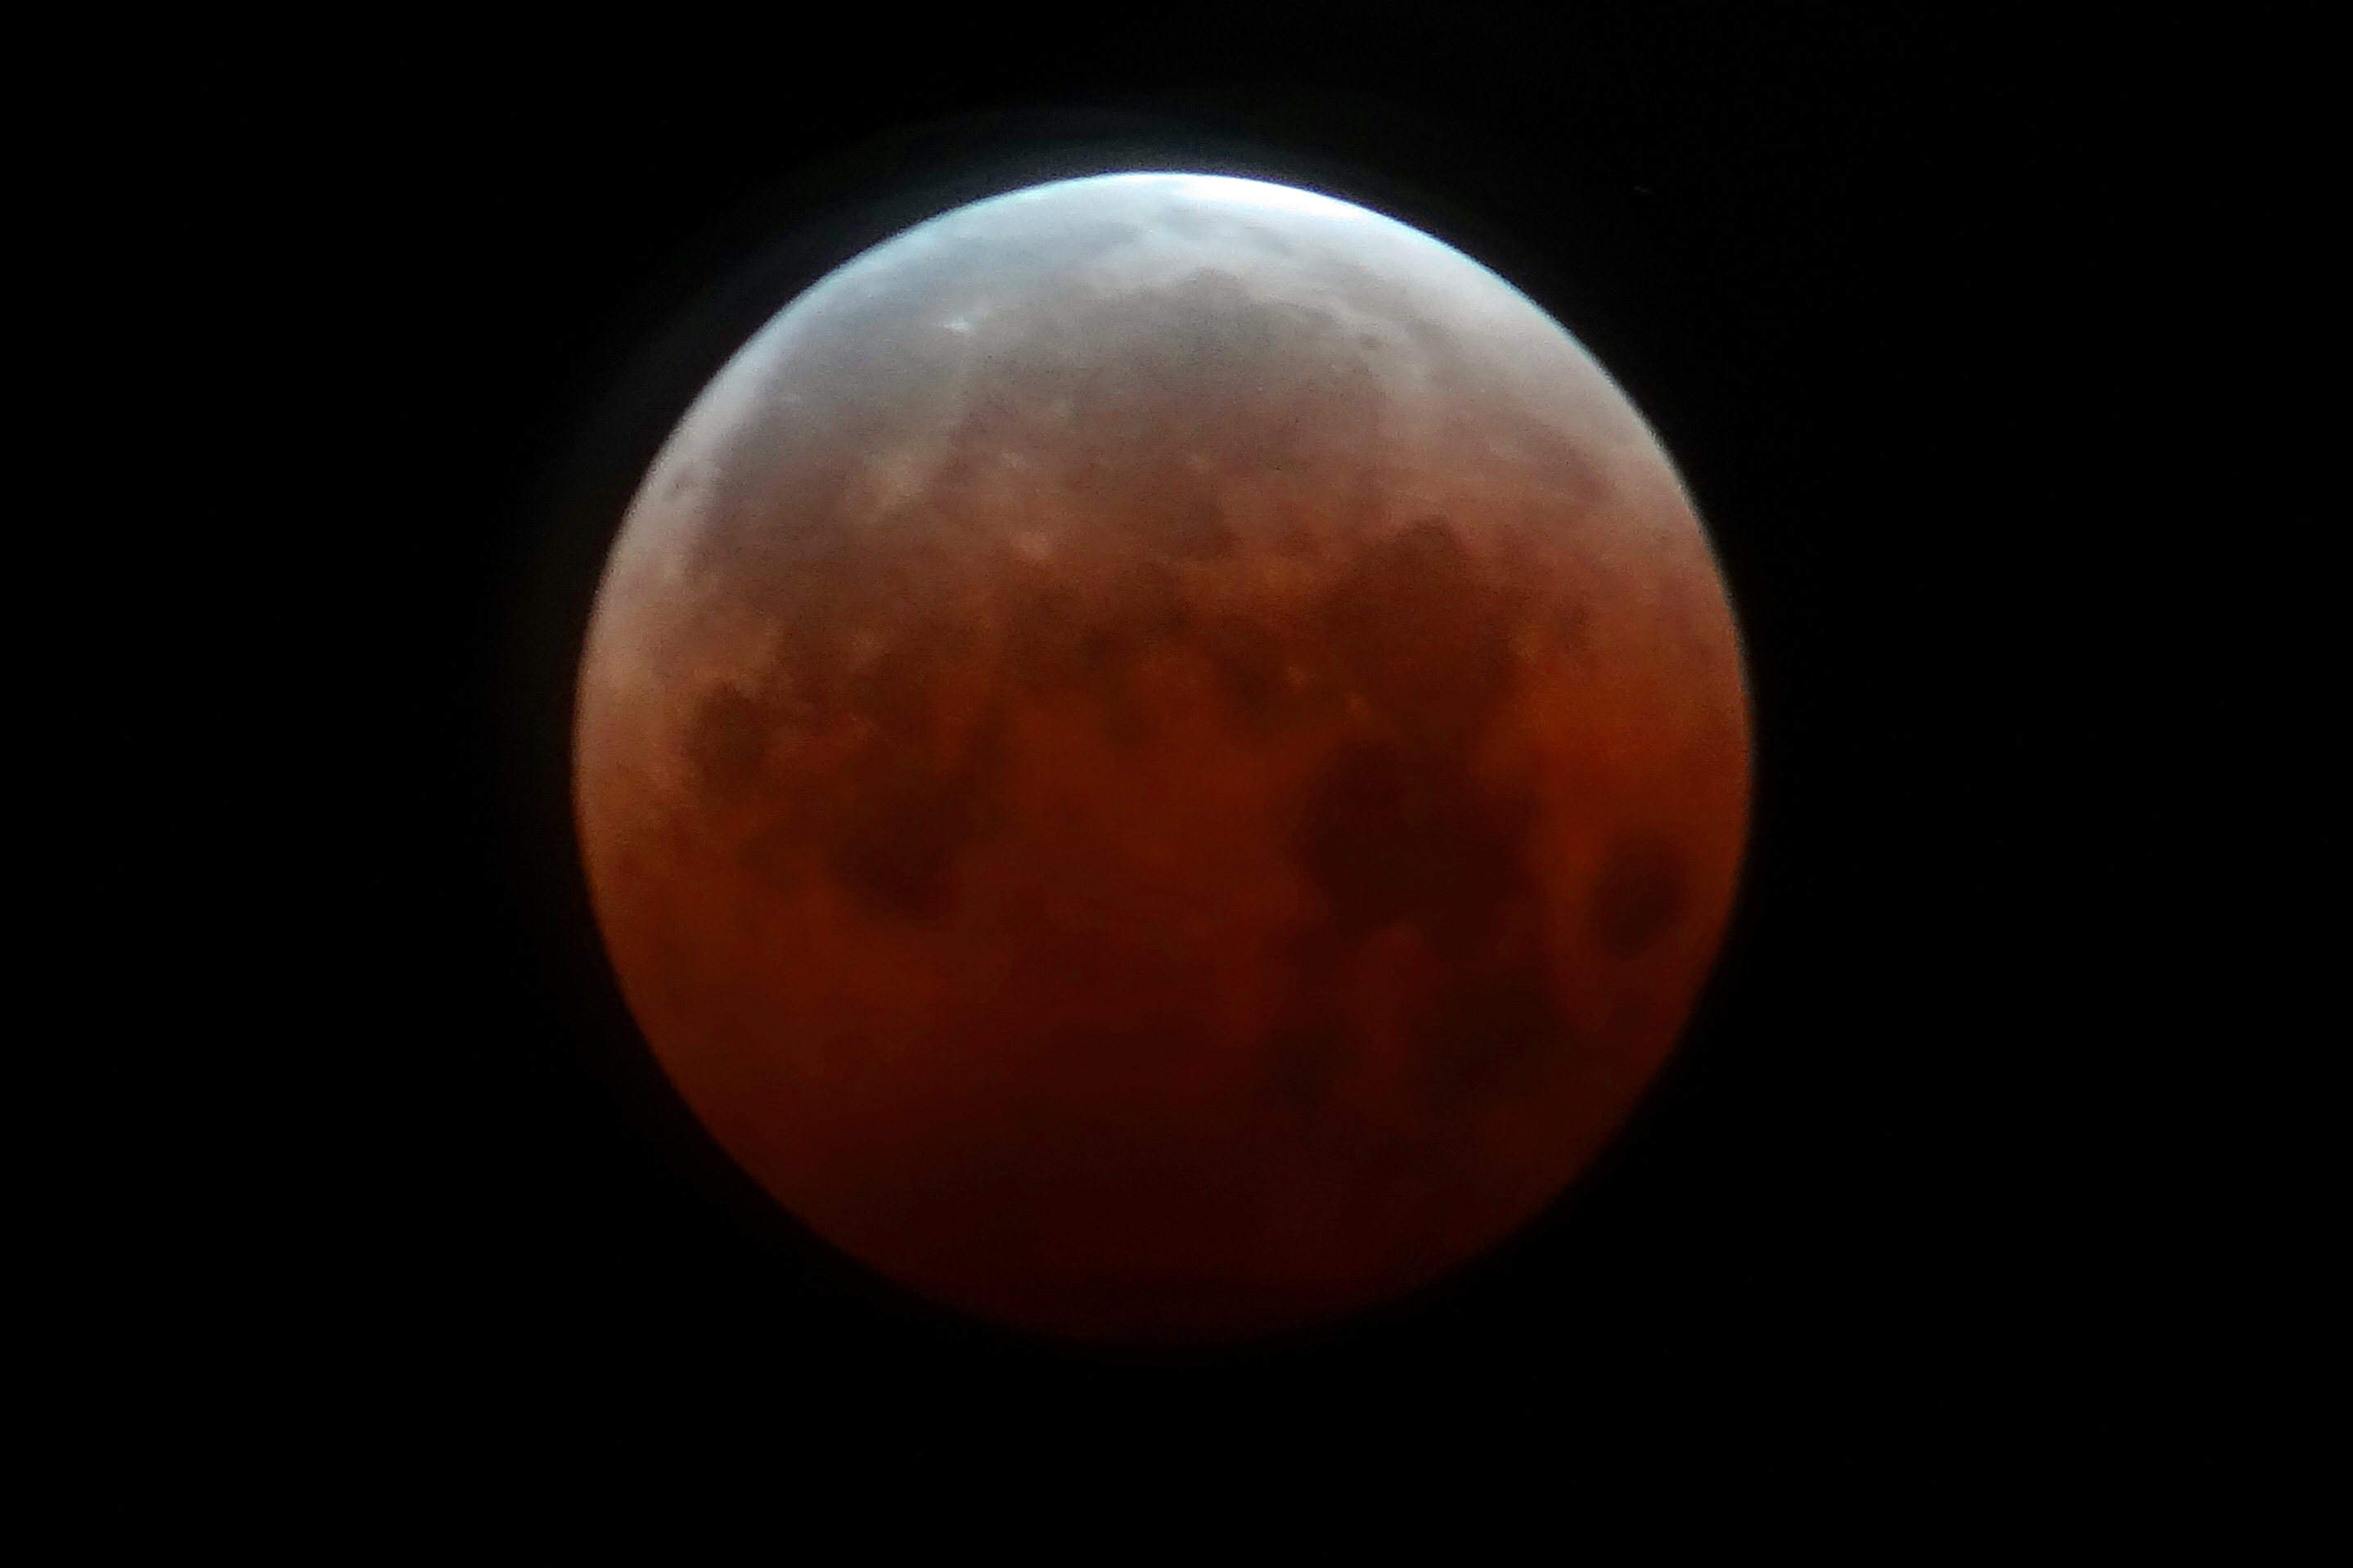 The Blood Moon October 2014